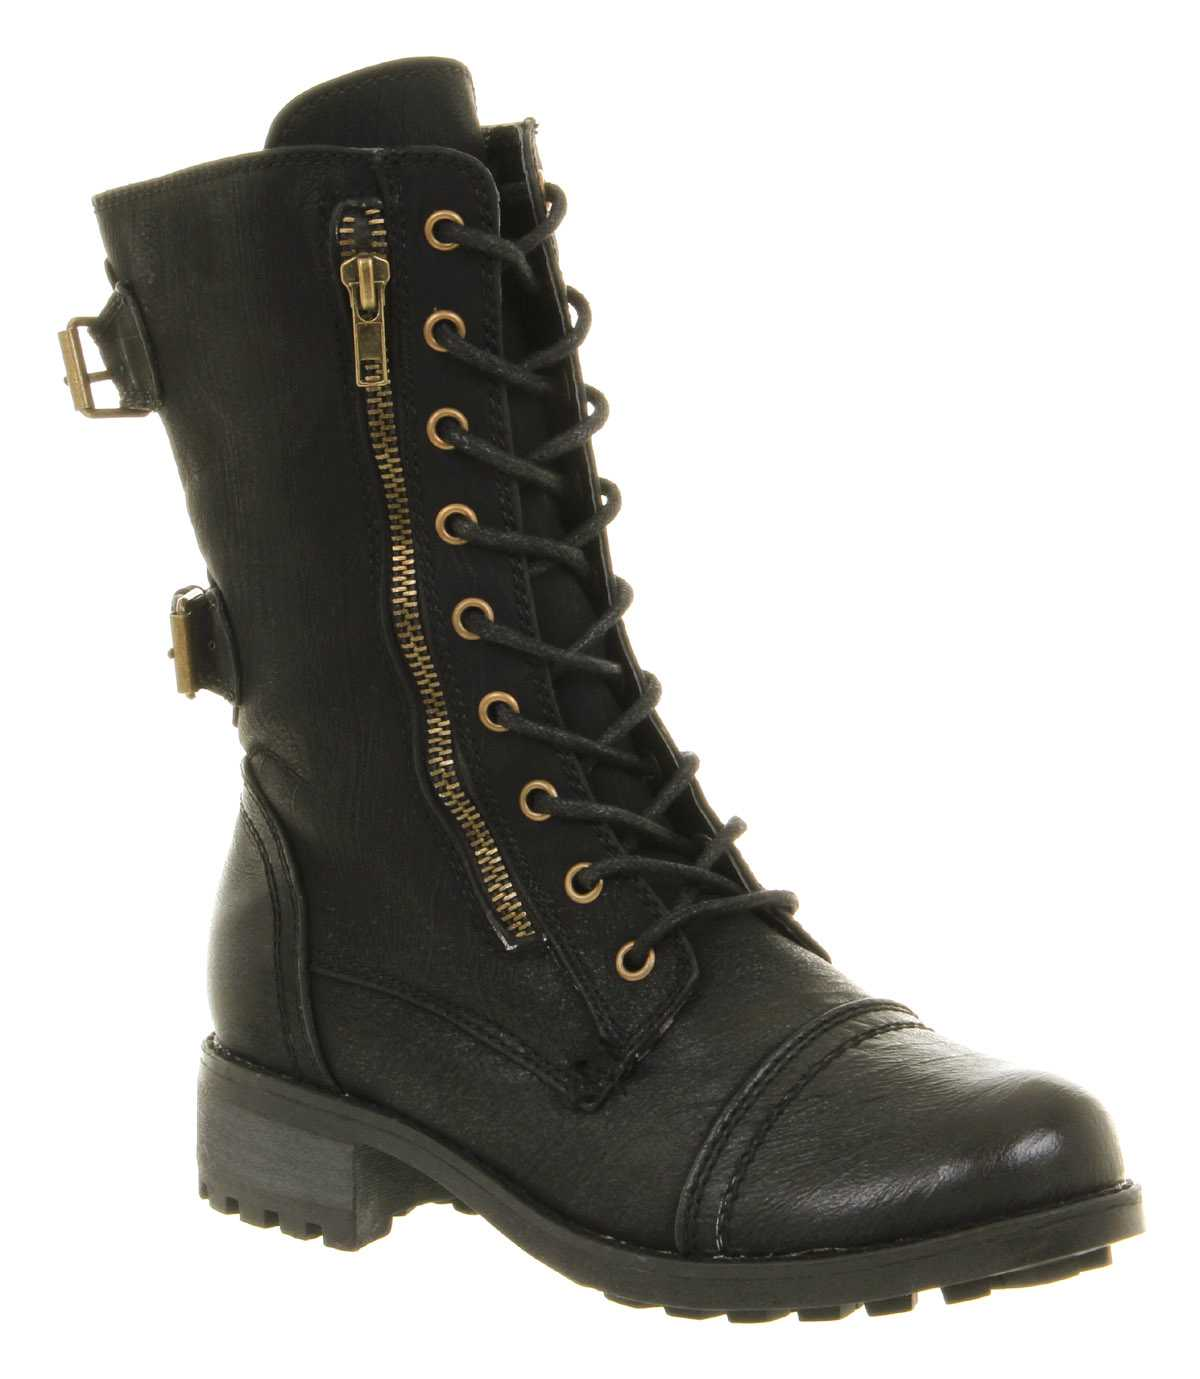 Beautiful Home  Boots  Womens Footwear  Work Boots  Women39s Justin Black